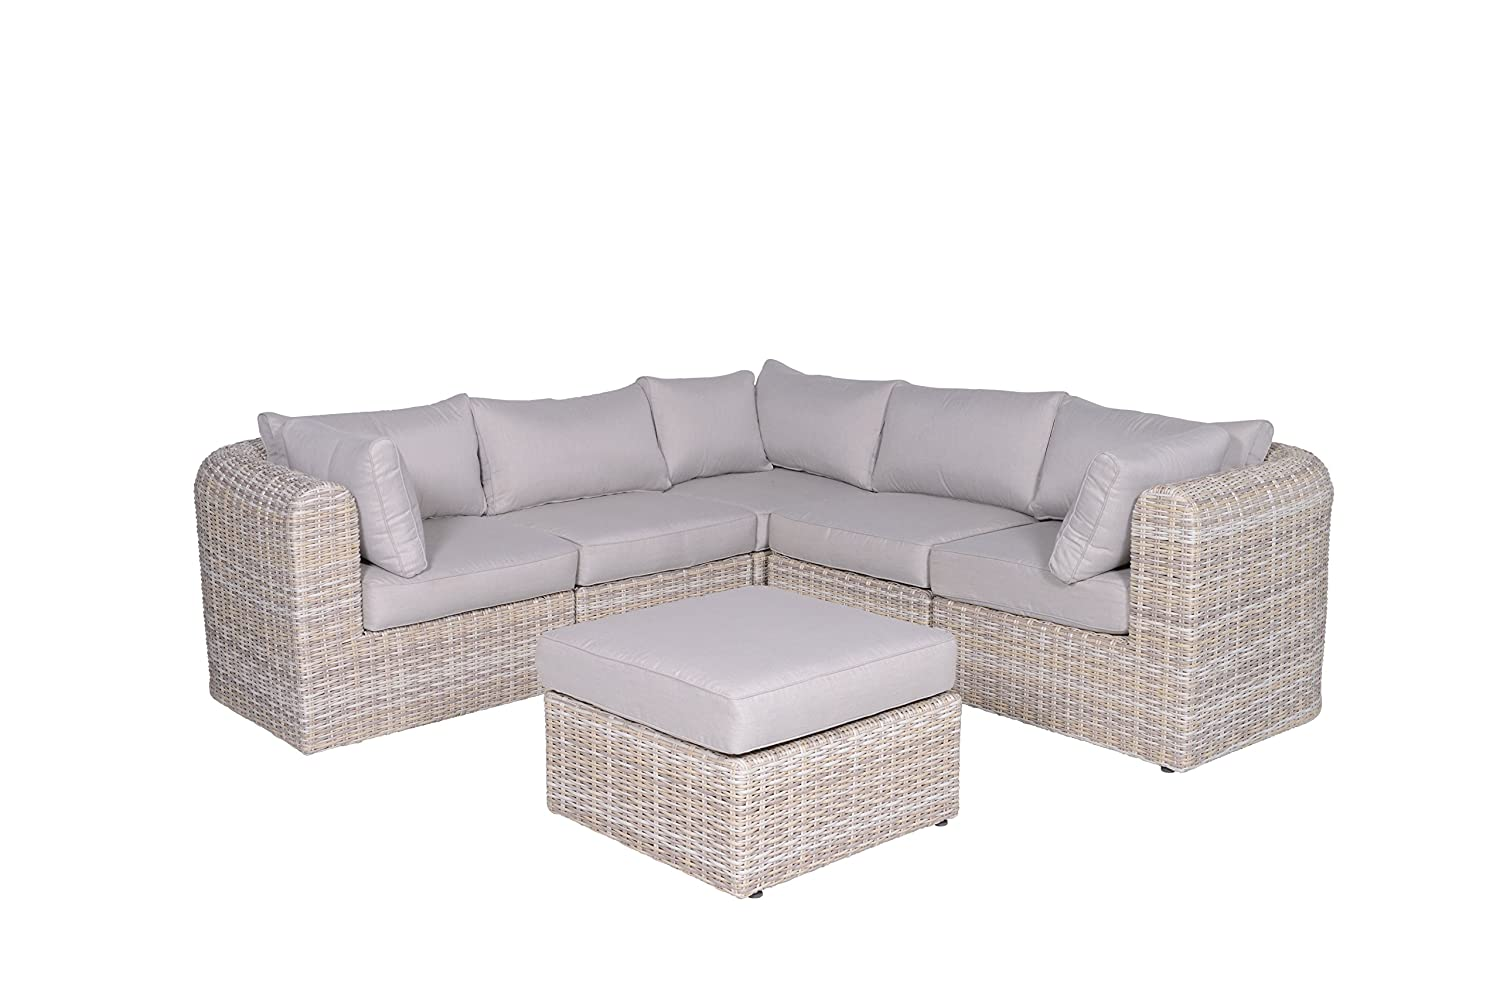 Garden Impressions Lounge Set Freiburg Passion Willow, 6-teilig ...